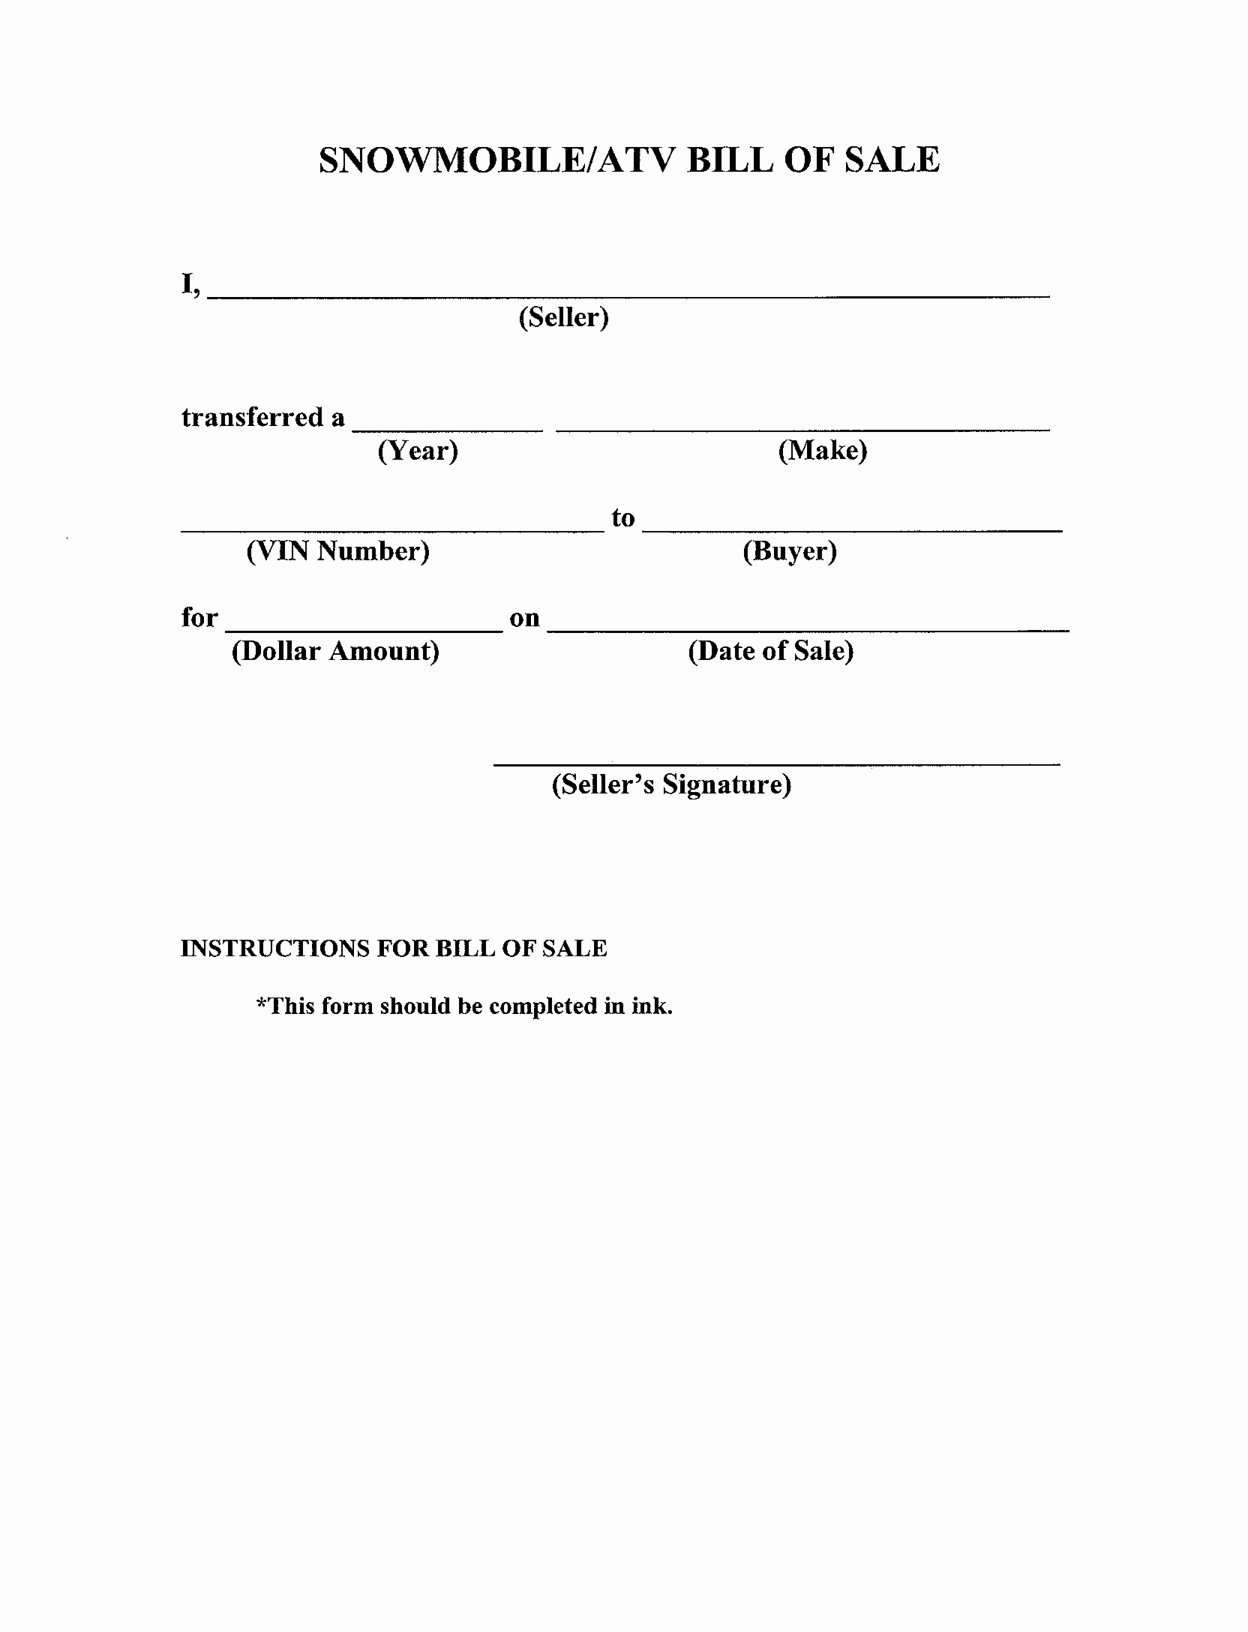 Bill Of Sale Document Template Unique Free Printable Bill Of Sale Templates form Generic